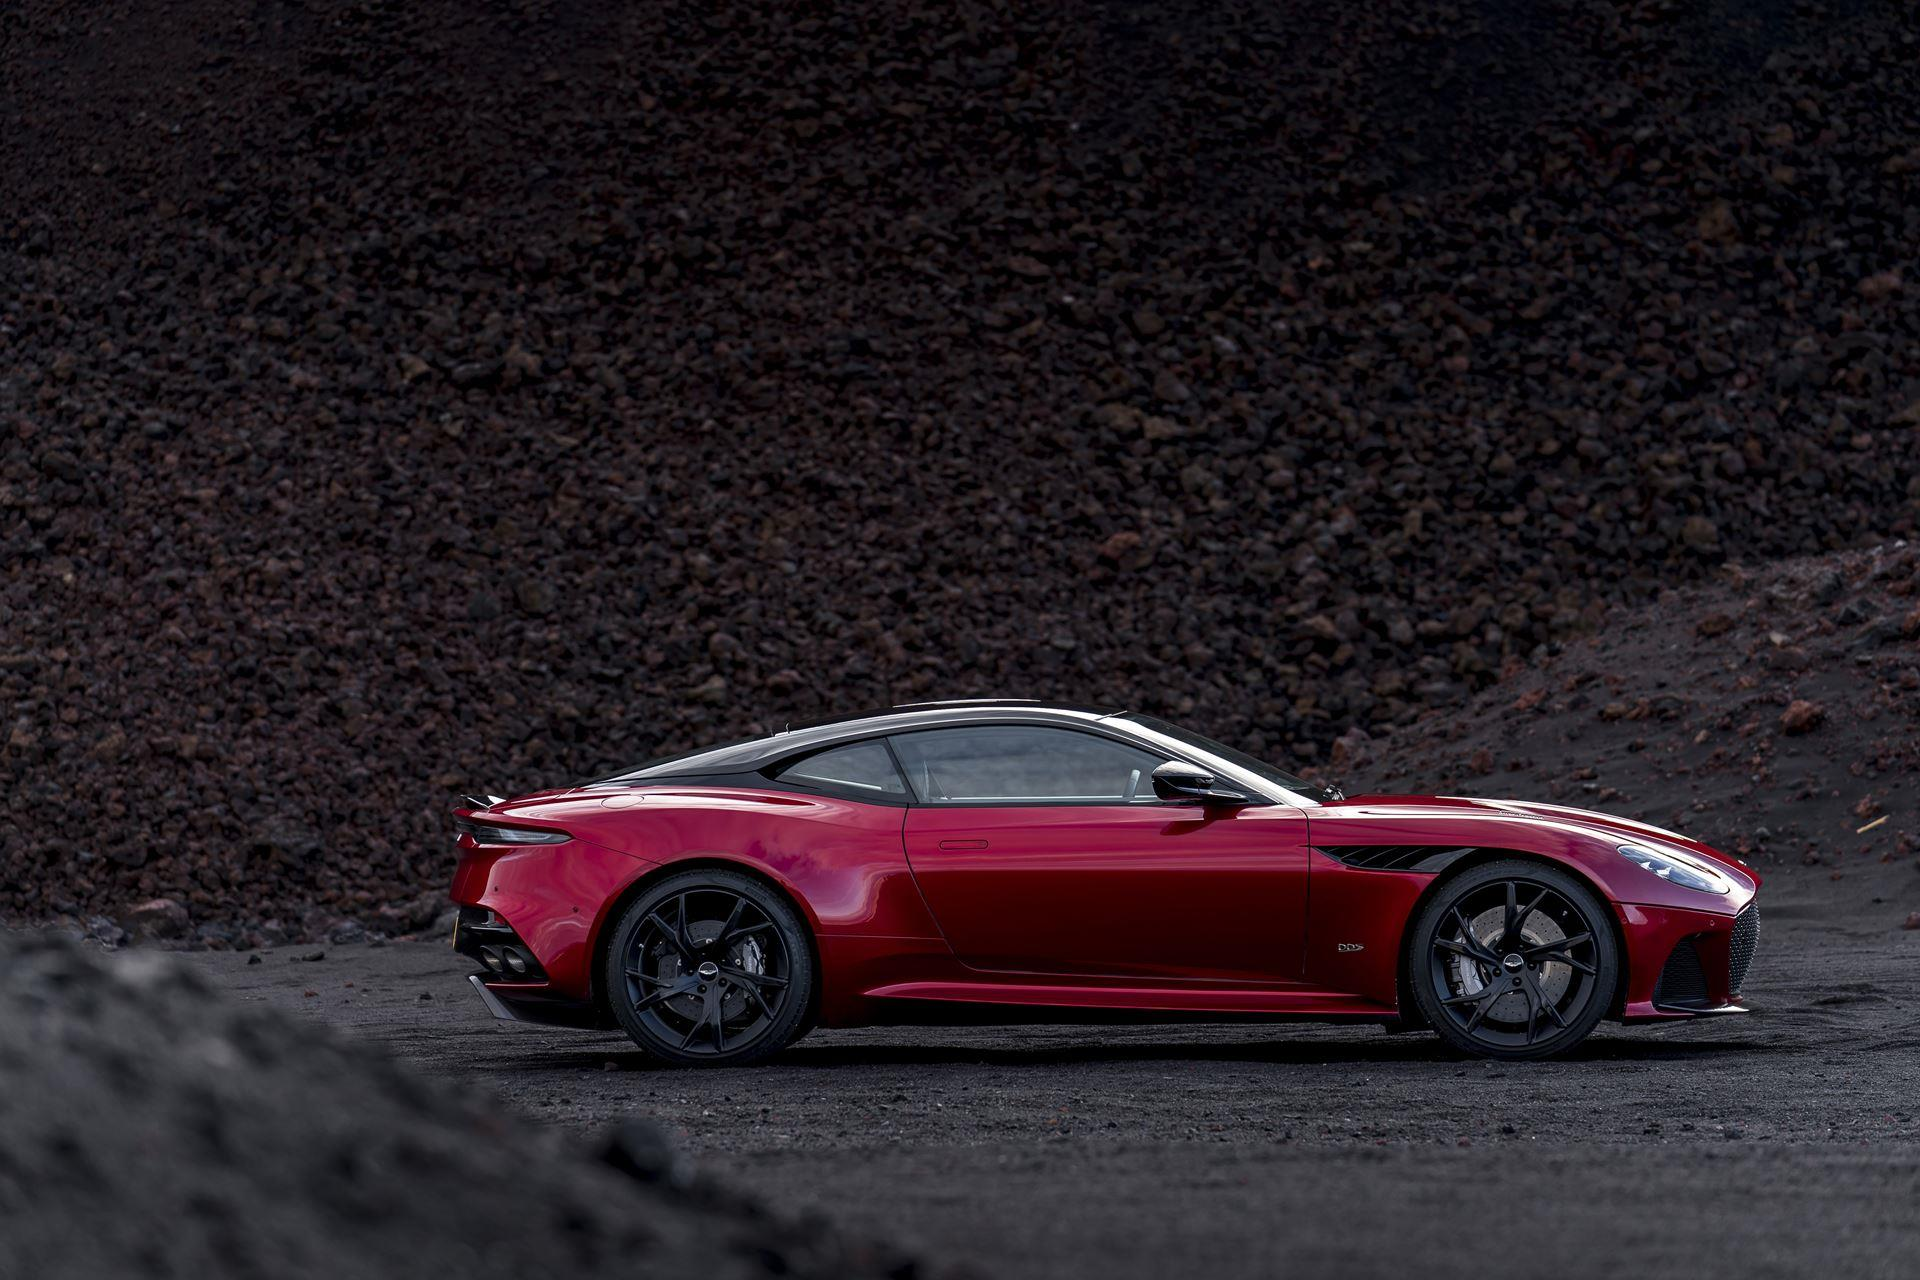 Aston Martin DBS Superleggera photo